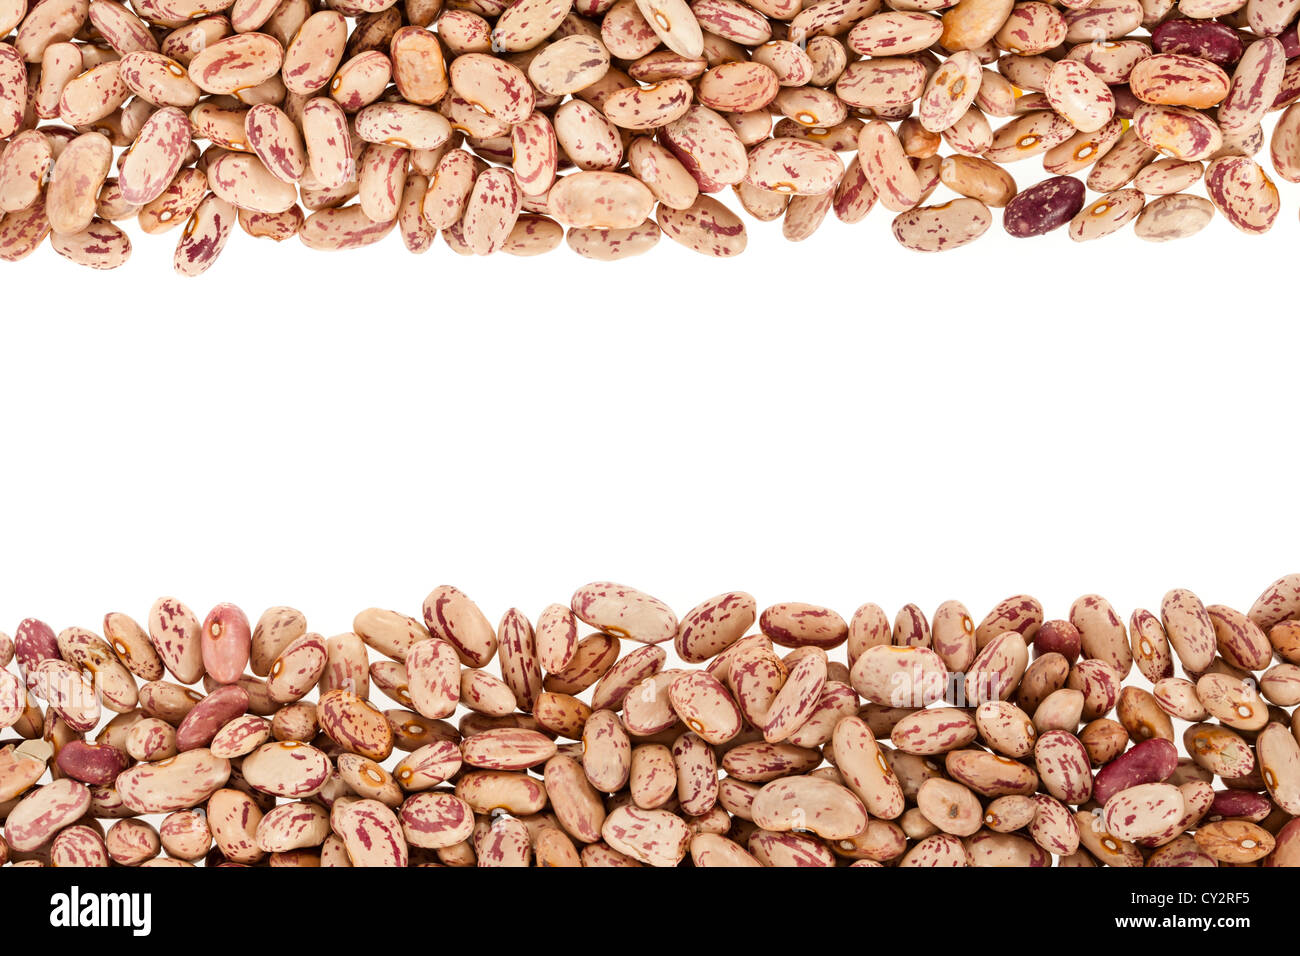 Pinto beans or mottled beans arranged in a frame - Stock Image